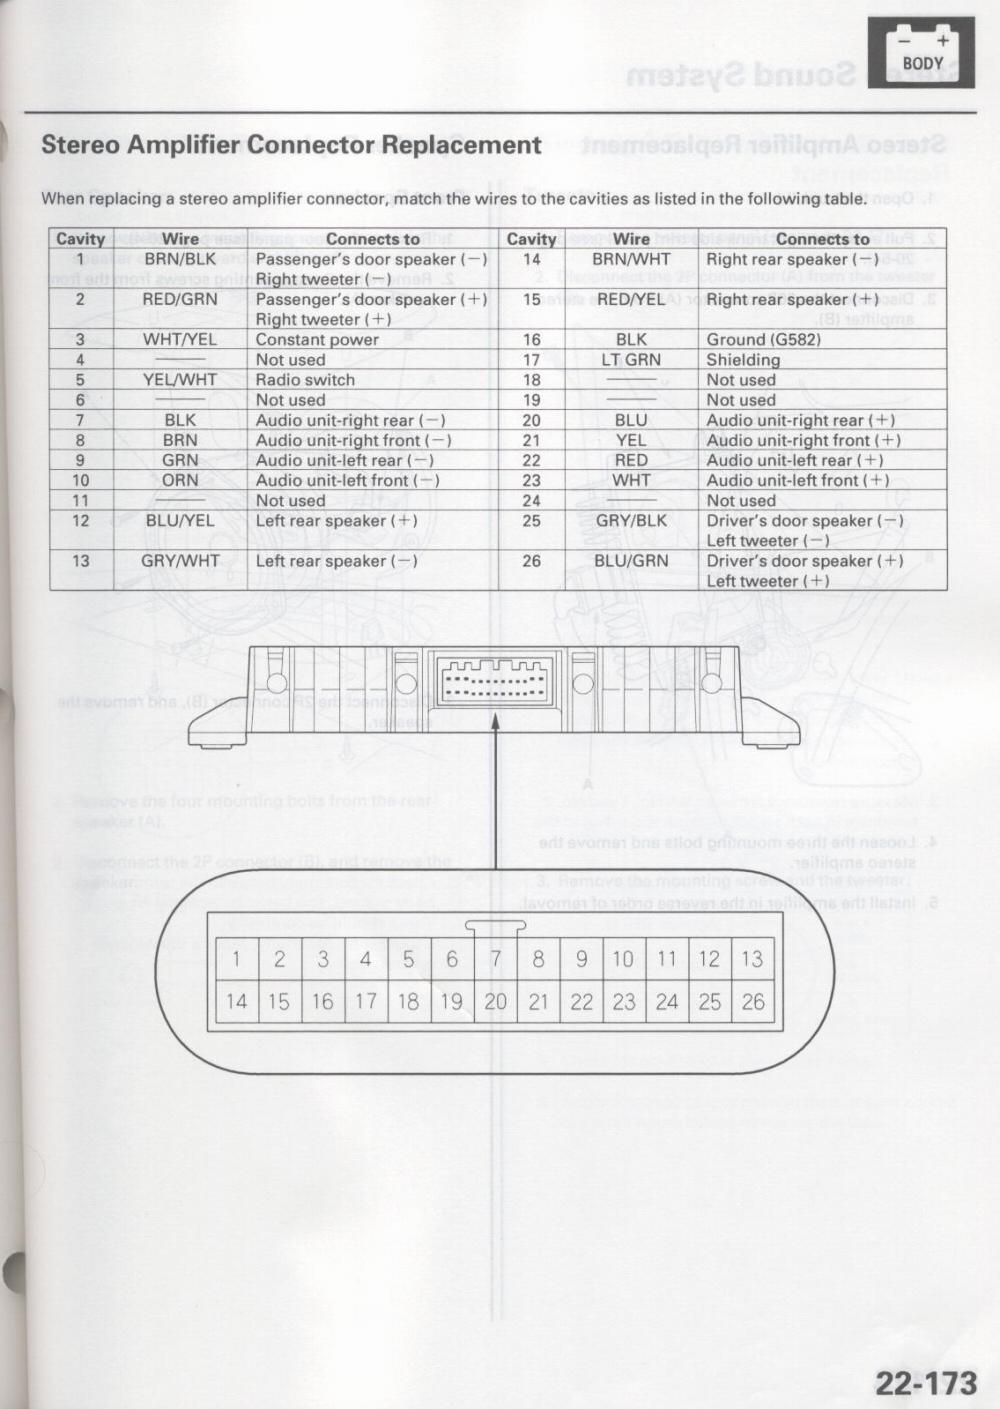 Acura 2002 TL car stereo amplifier wiring diagram harness acura mdx stereo wiring diagram wiring diagram simonand 2006 acura rsx stereo wiring diagram at gsmx.co